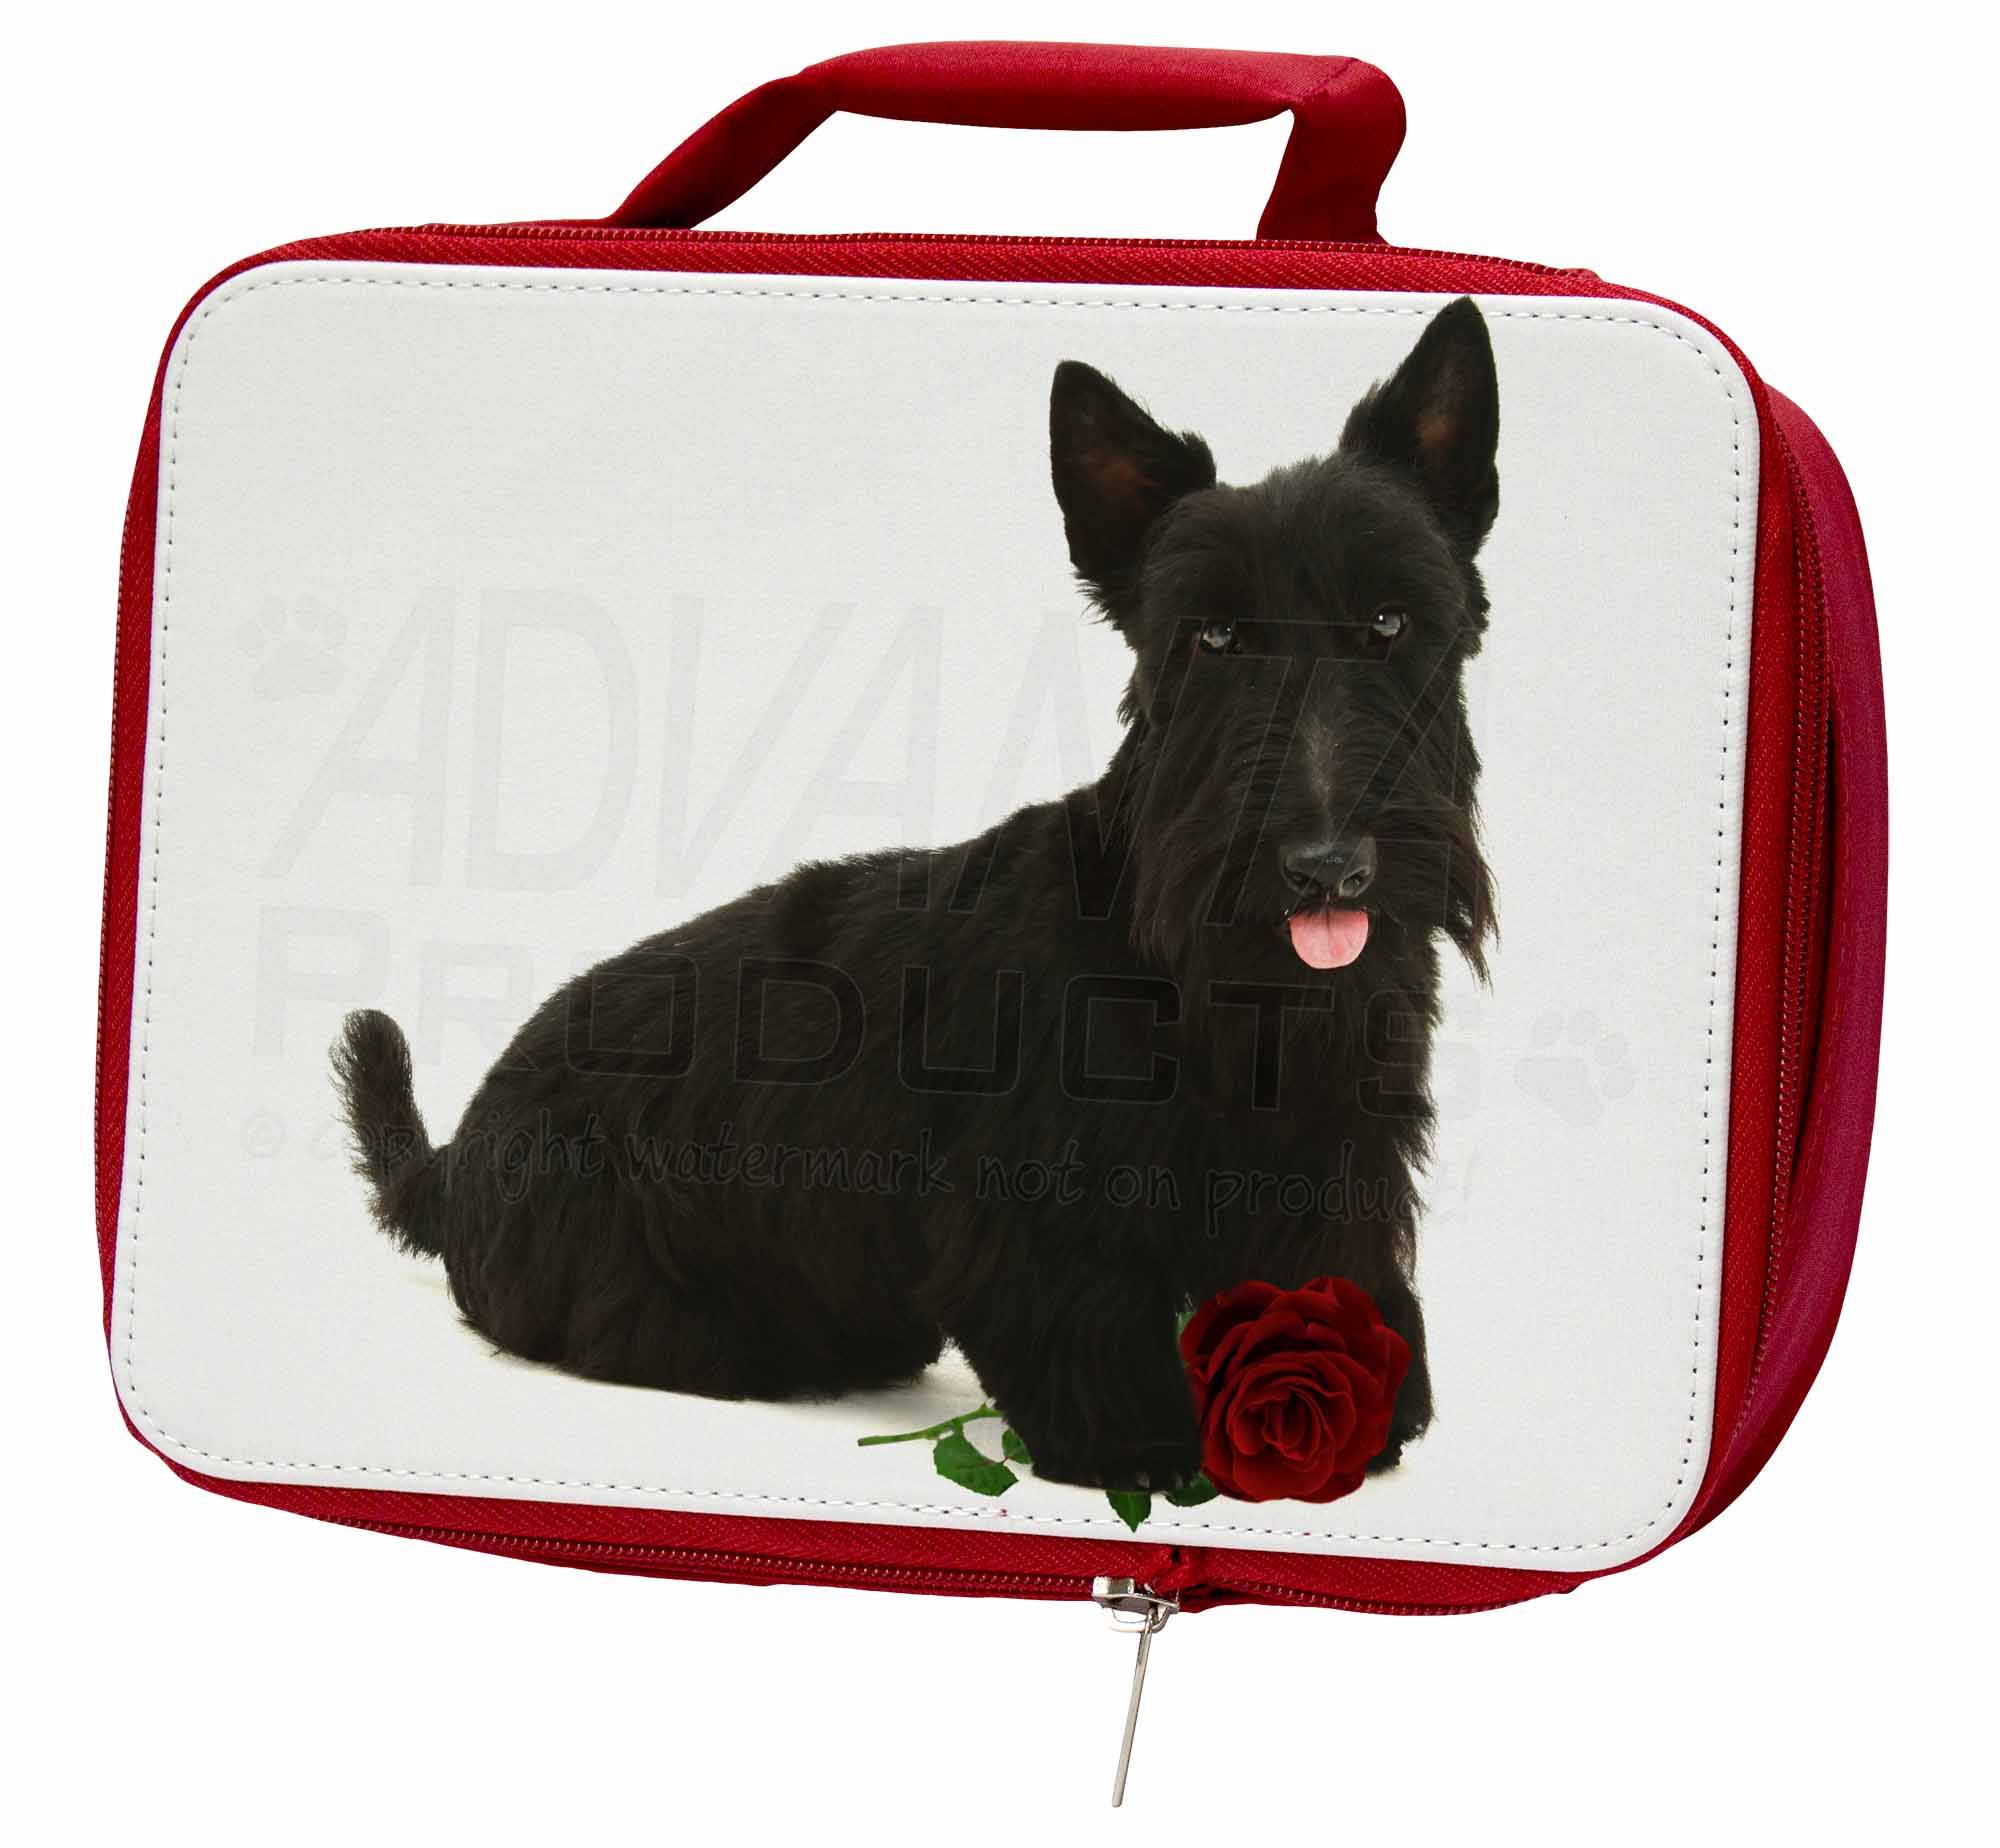 Scottish Terrier with Red Rose Insulated Red School Box/Picnic, Lunch Box/Picnic, School AD-ST2RLBR b50b10